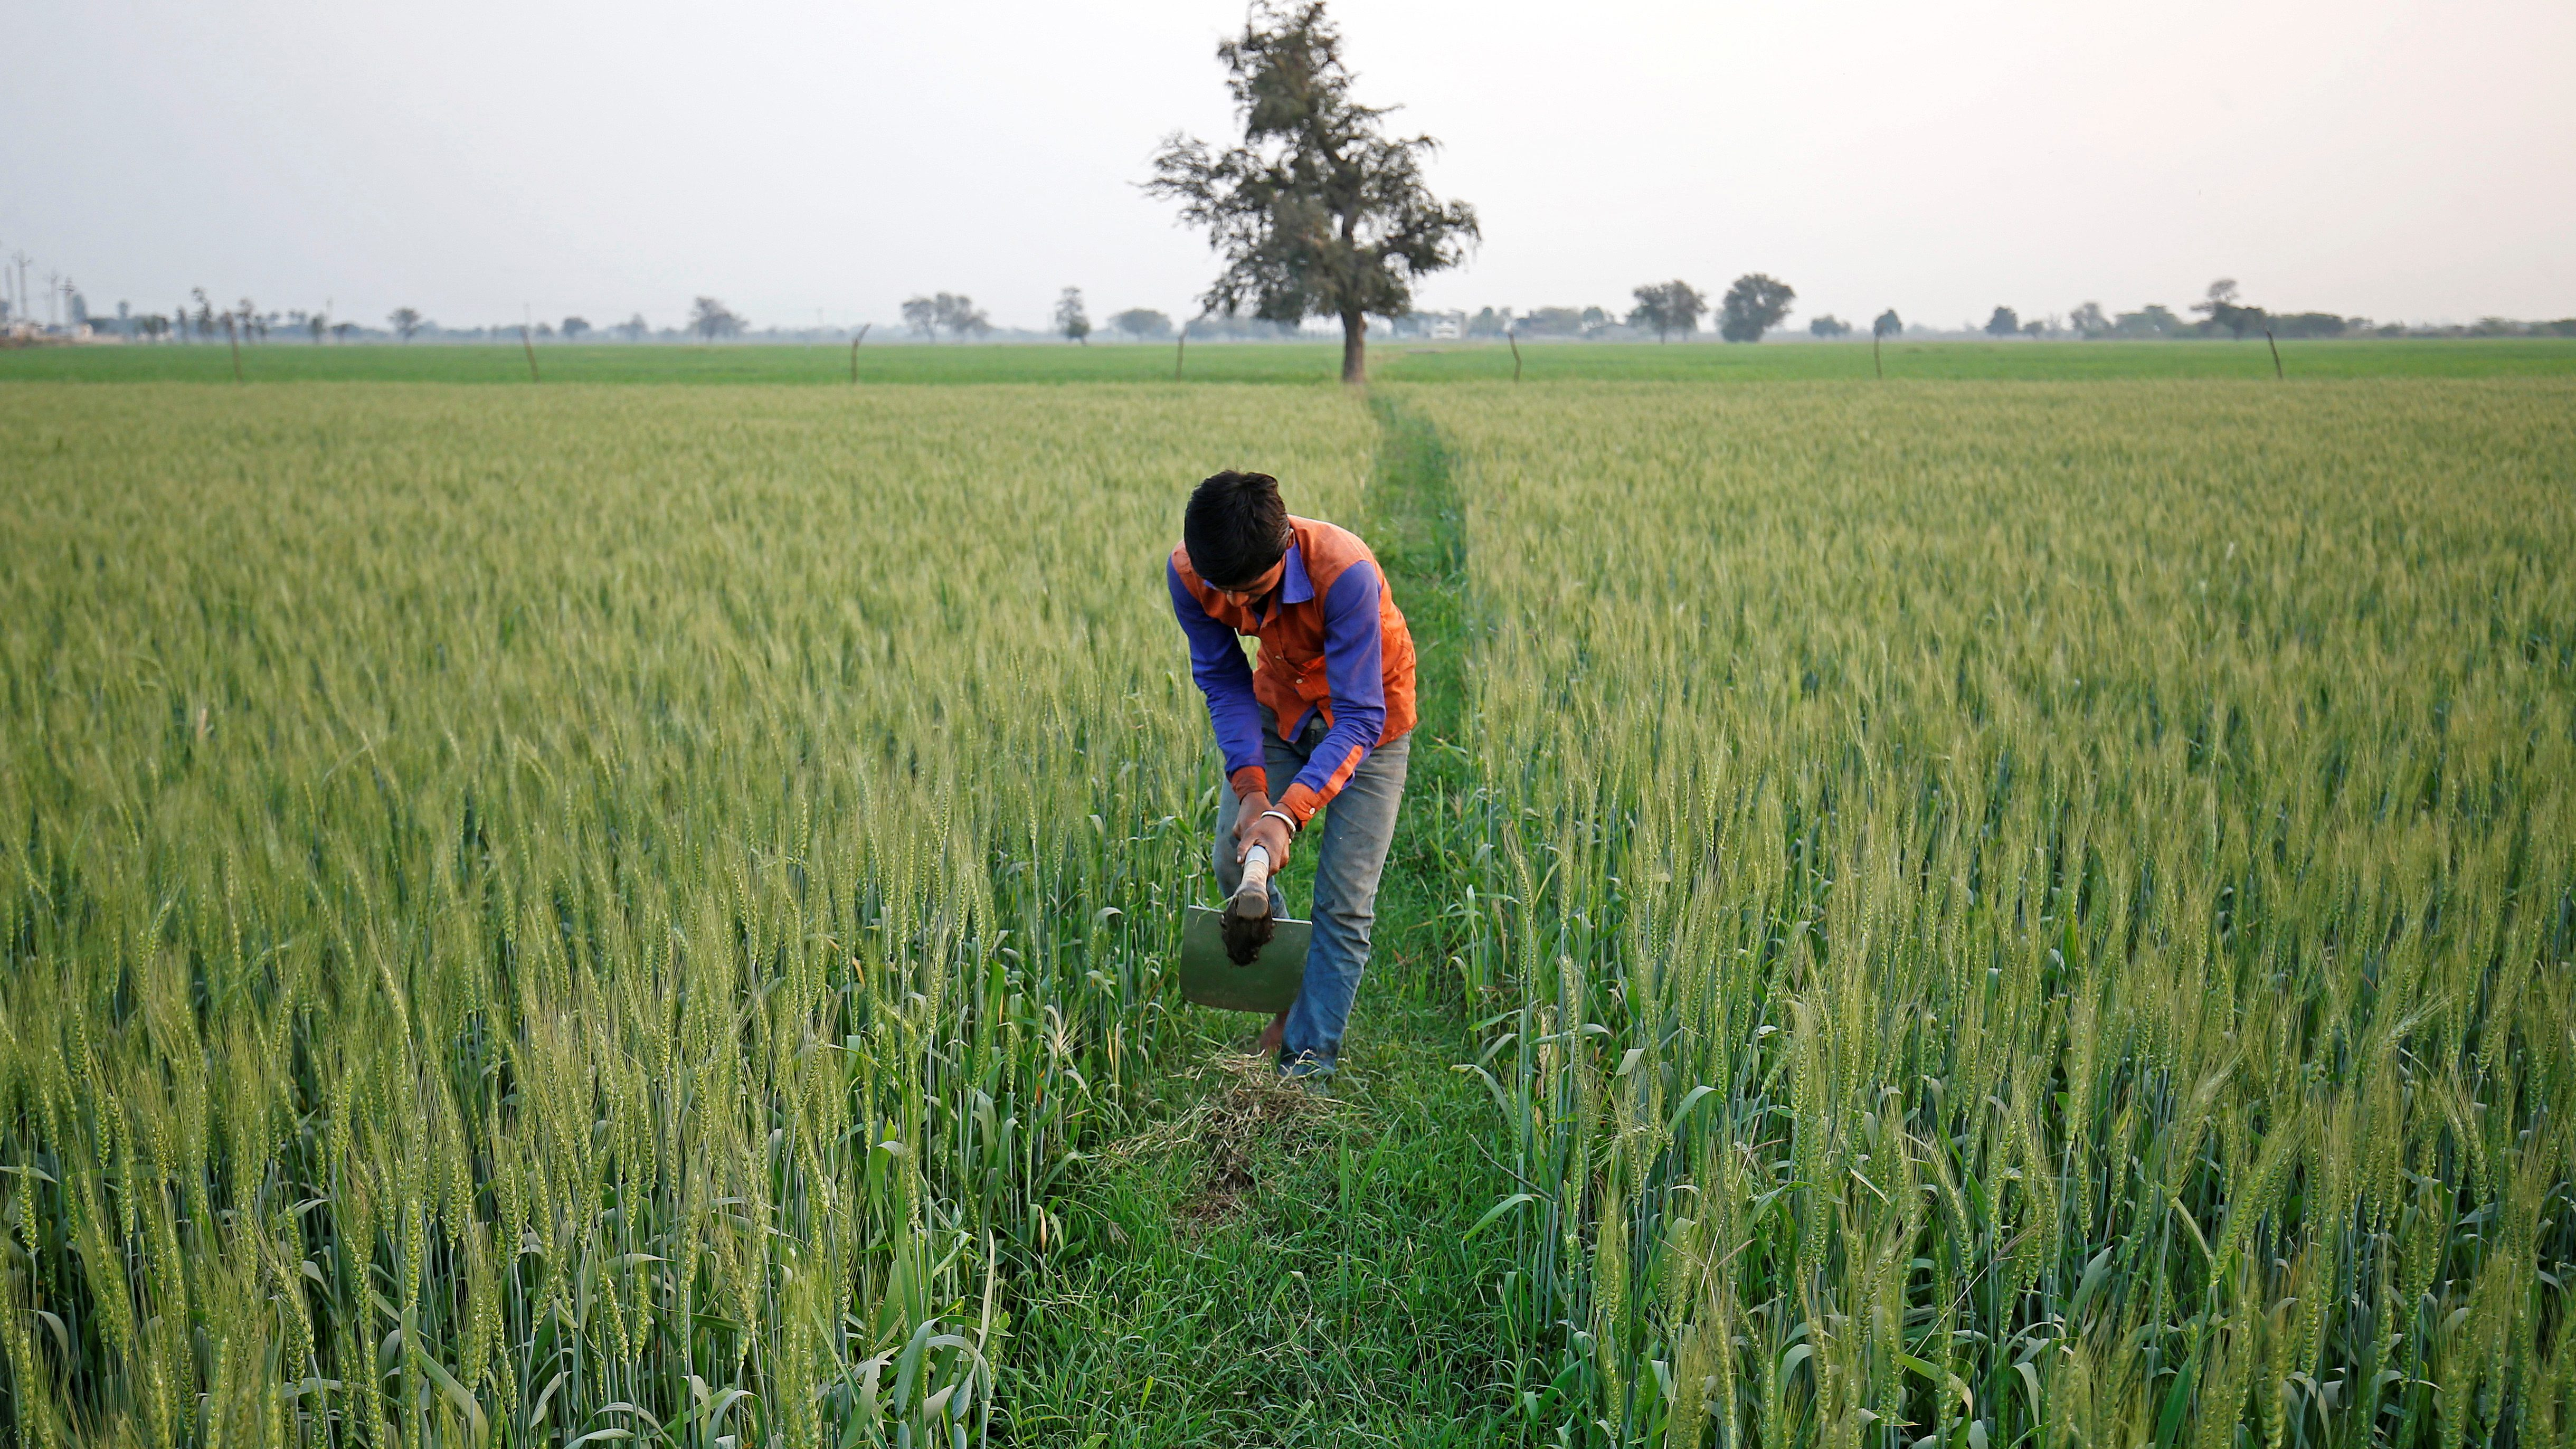 A farmer works in wheat field on the outskirts of Ahmedabad